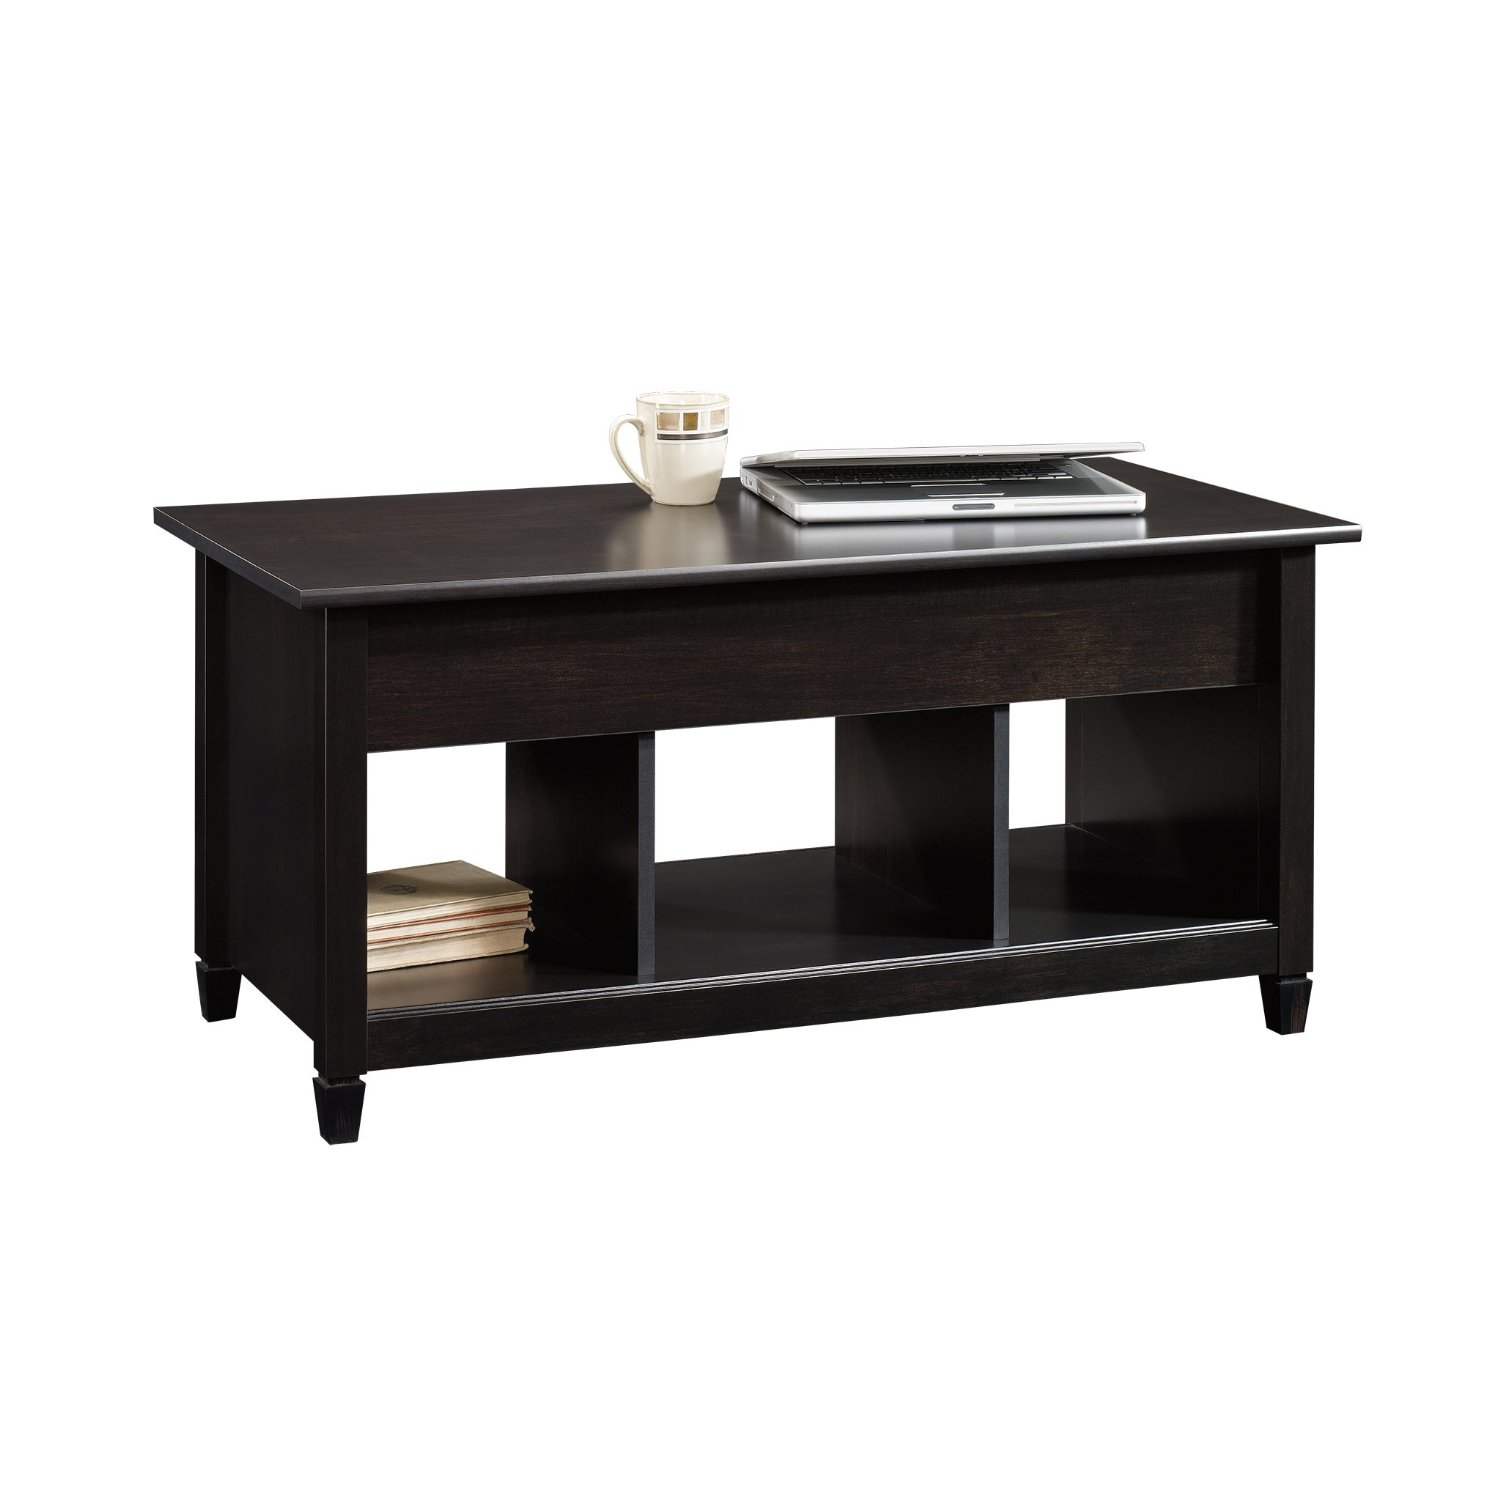 Sauder Edge Water Lift Top Coffee Table Estate Black Finish Ebay